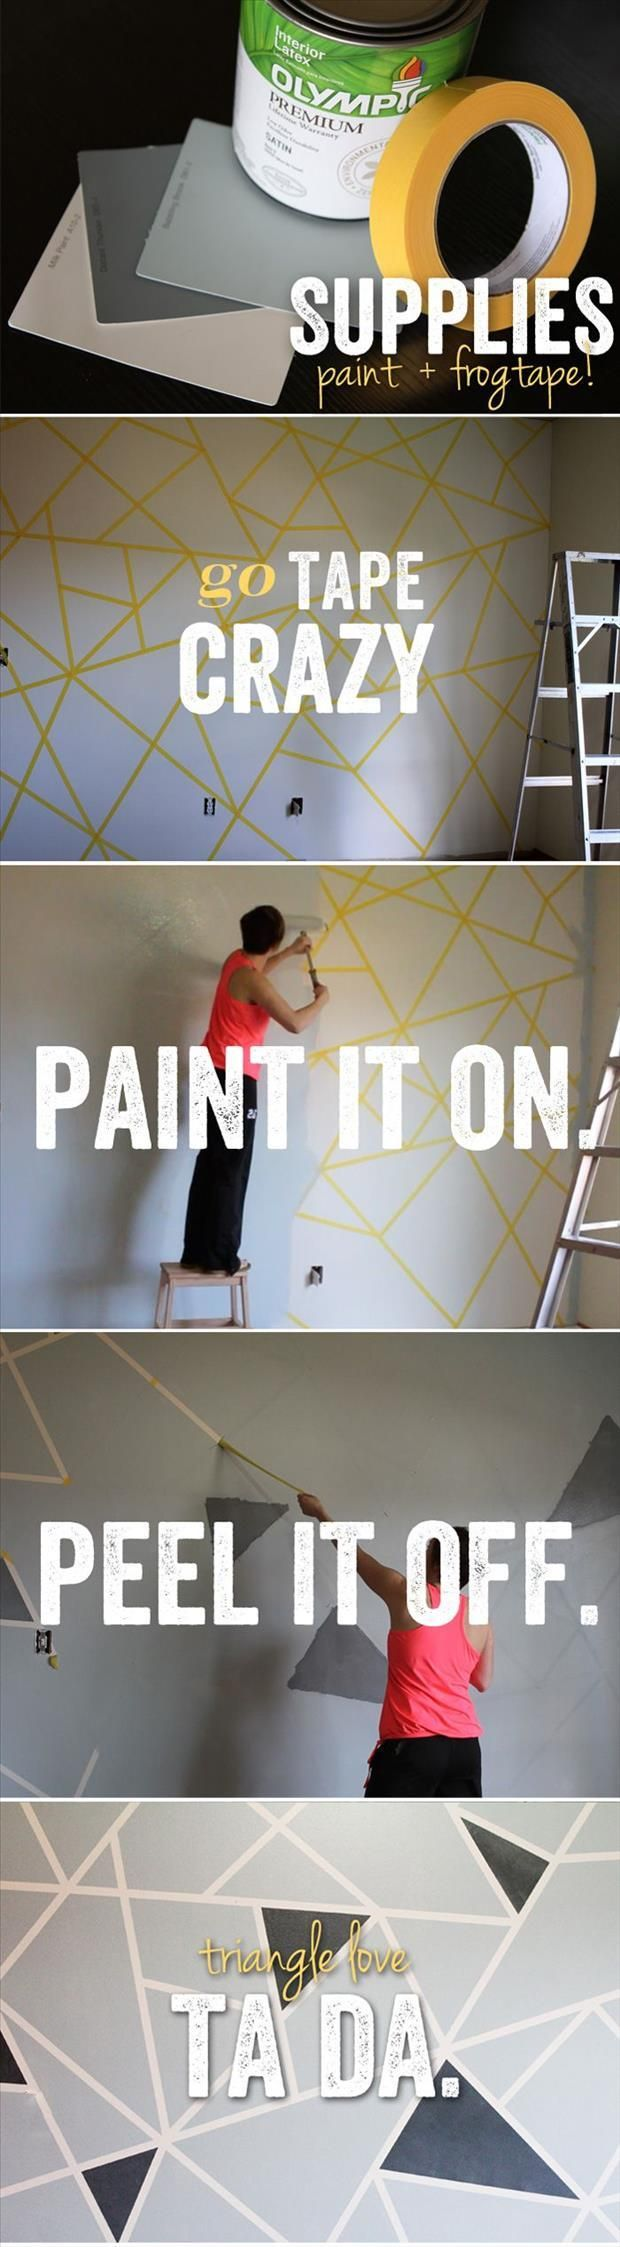 Simple Ideas That Are Borderline Crafty – 30 Pics